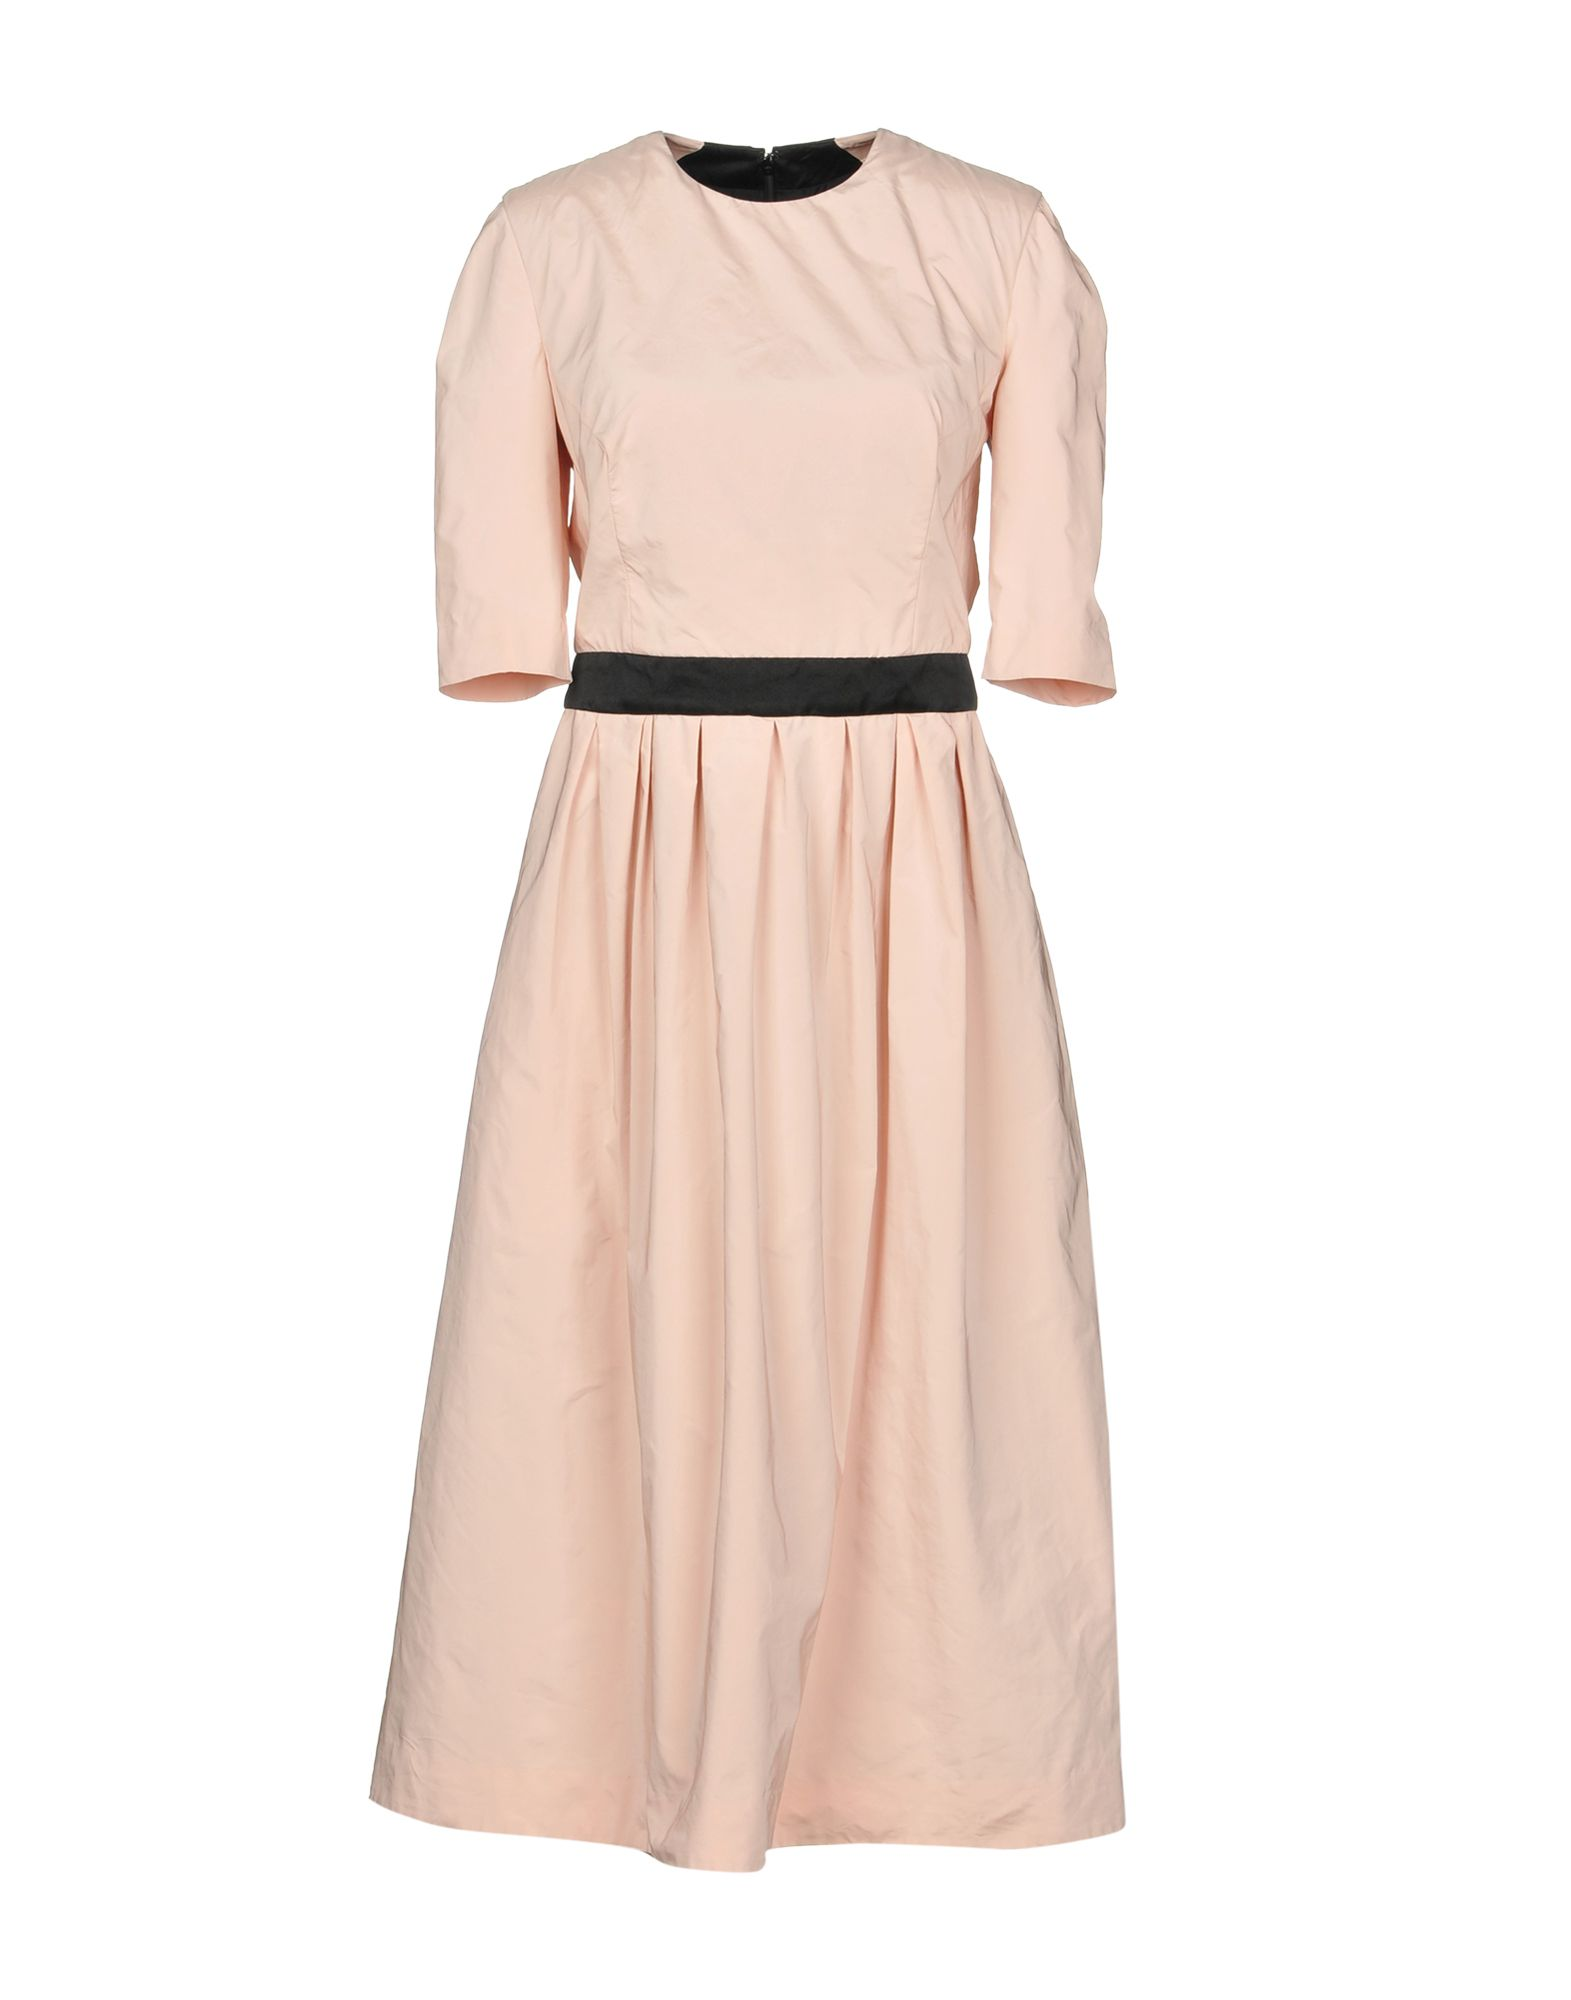 CREATURES OF THE WIND Midi Dress in Pink